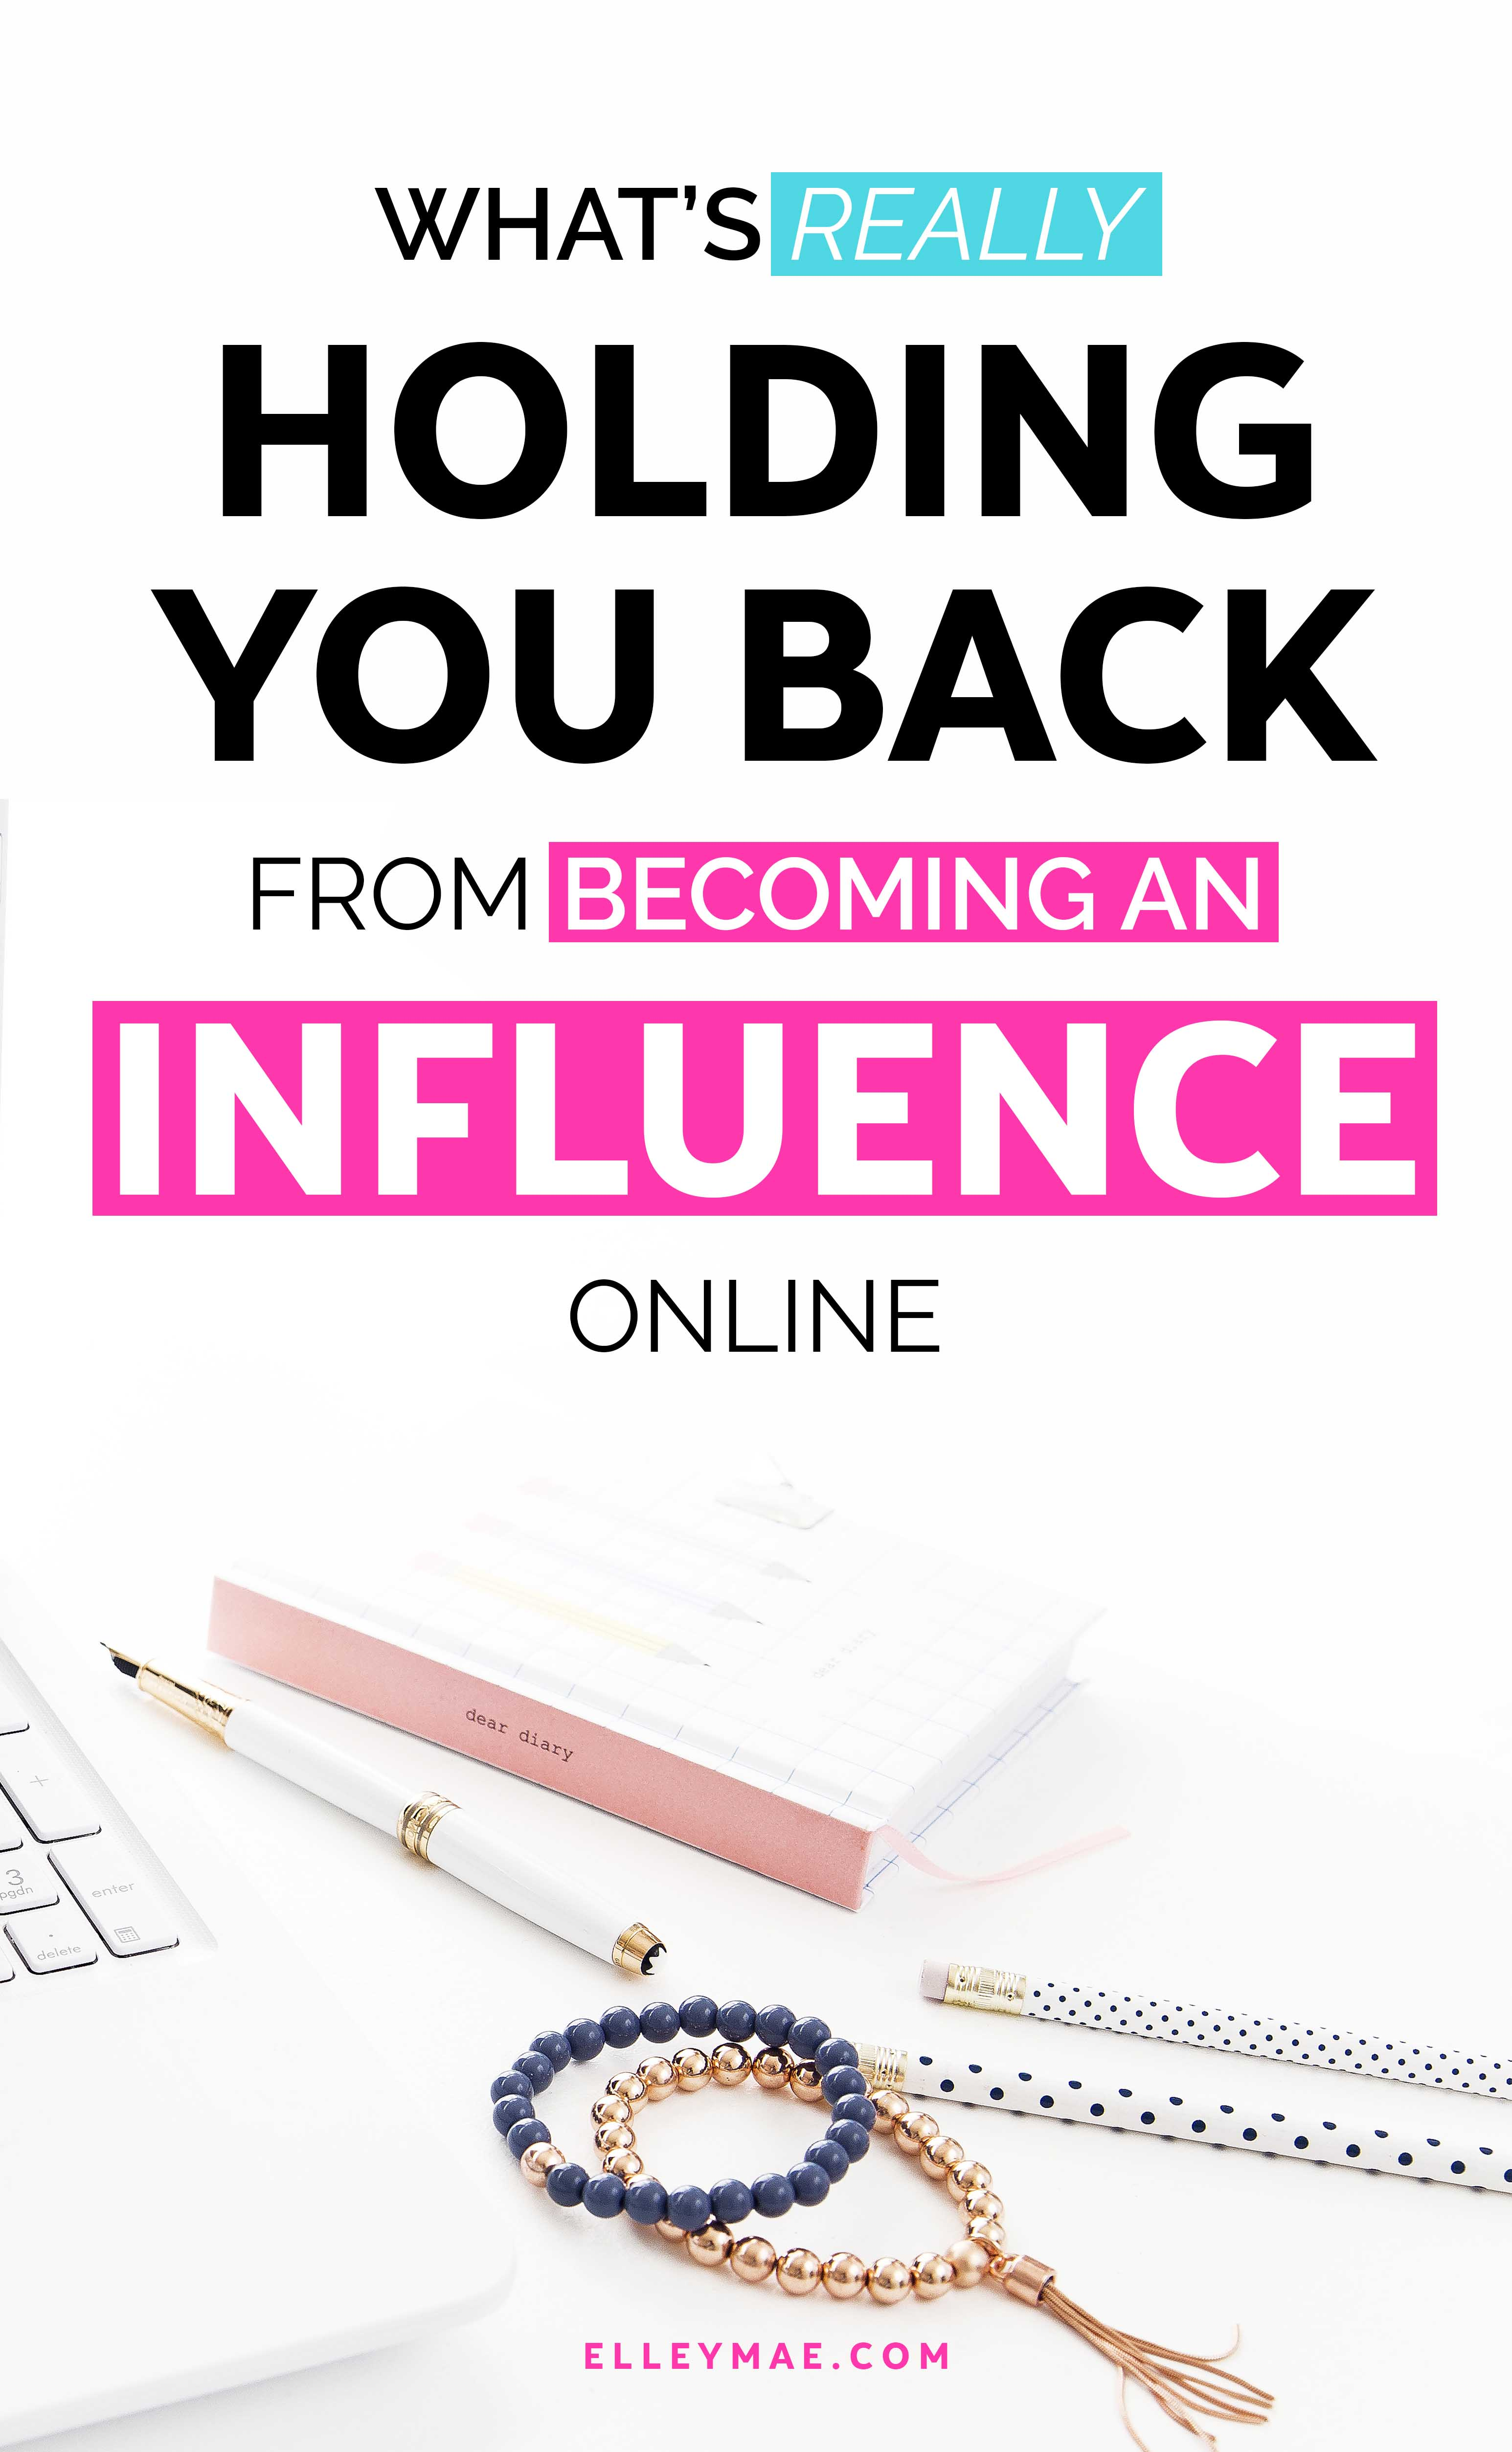 The number one thing holding far too many female entrepreneurs, small biz owners, bloggers, Instagram Influencers & #bossbabes back from becoming an influence online? Their mindset! Get inspired to become a better version of yourself & clear your mindset with today's post on ElleyMae.com   Becoming an influence online, blog tips, social media tips, social media marketing, Instagram influencer, make money online, work from home, make money at home, mindset, mindset shifts, entrepreneur mindset, grow your blog #influence #femtrepreneur #smallbizowner #entrepreneurmindset